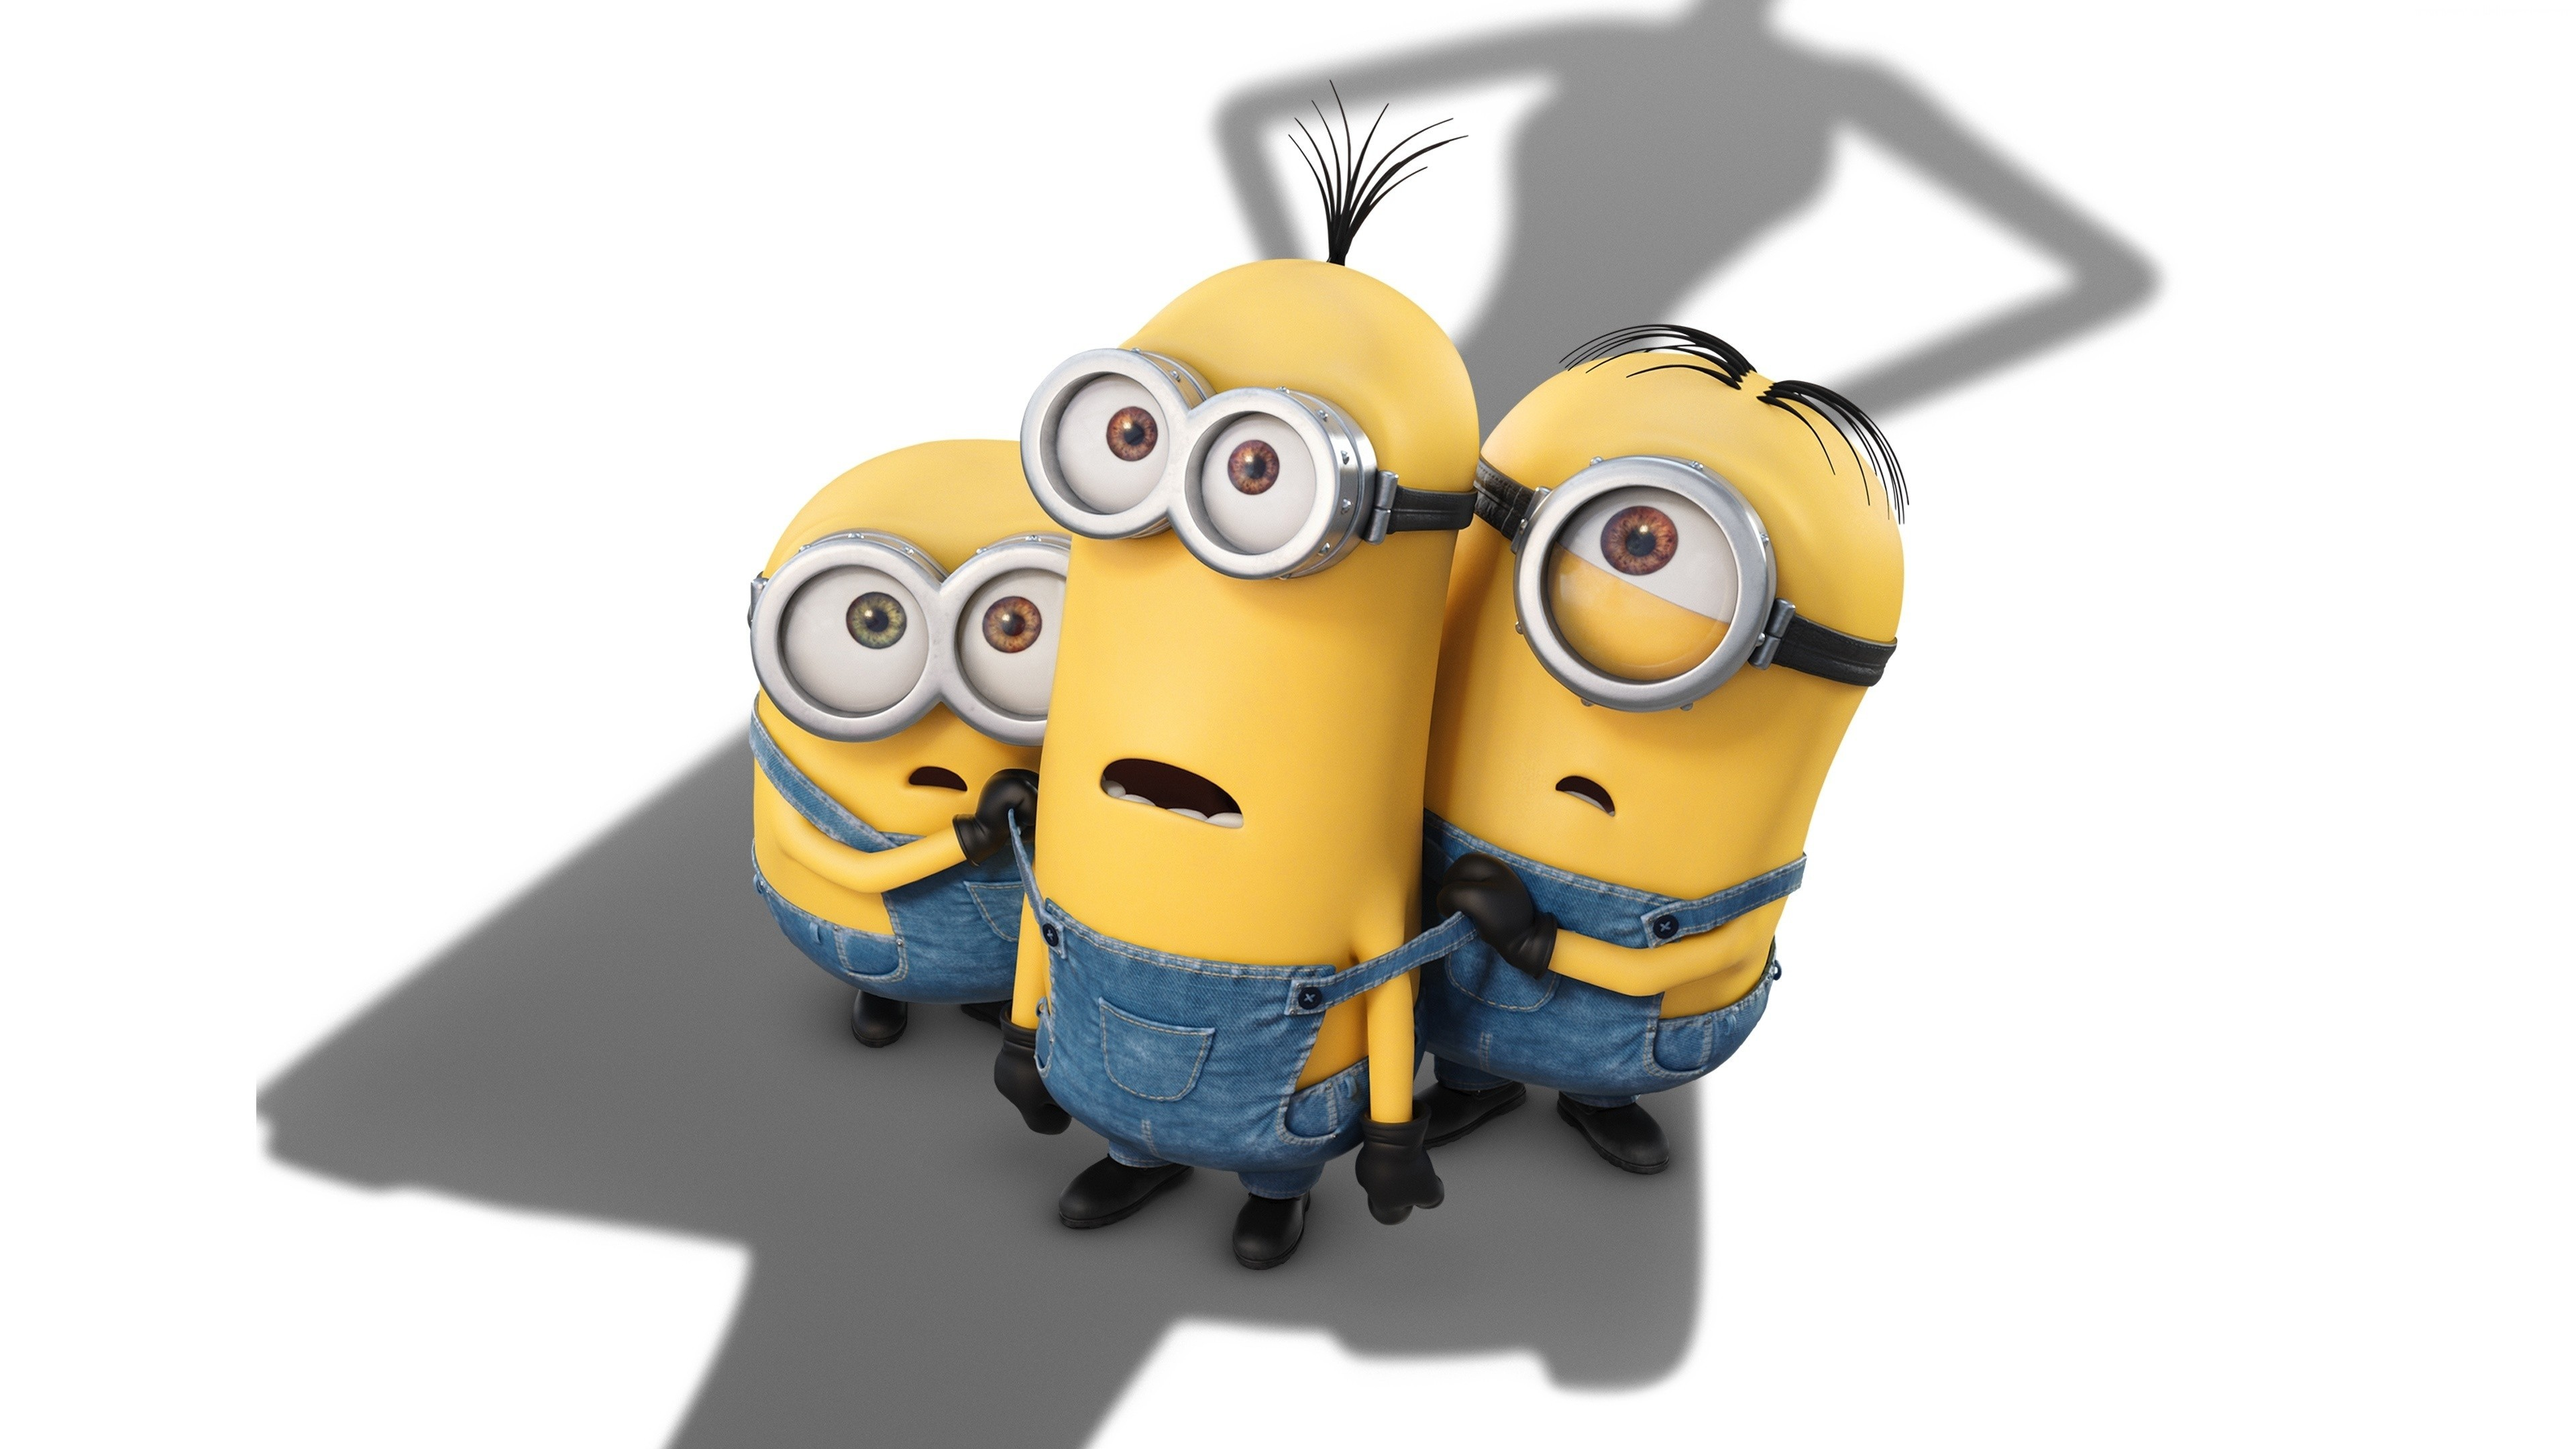 3840x2160 Funny-Minions-4k-Wallpaper-funnyminions-cartoon-cute-by-